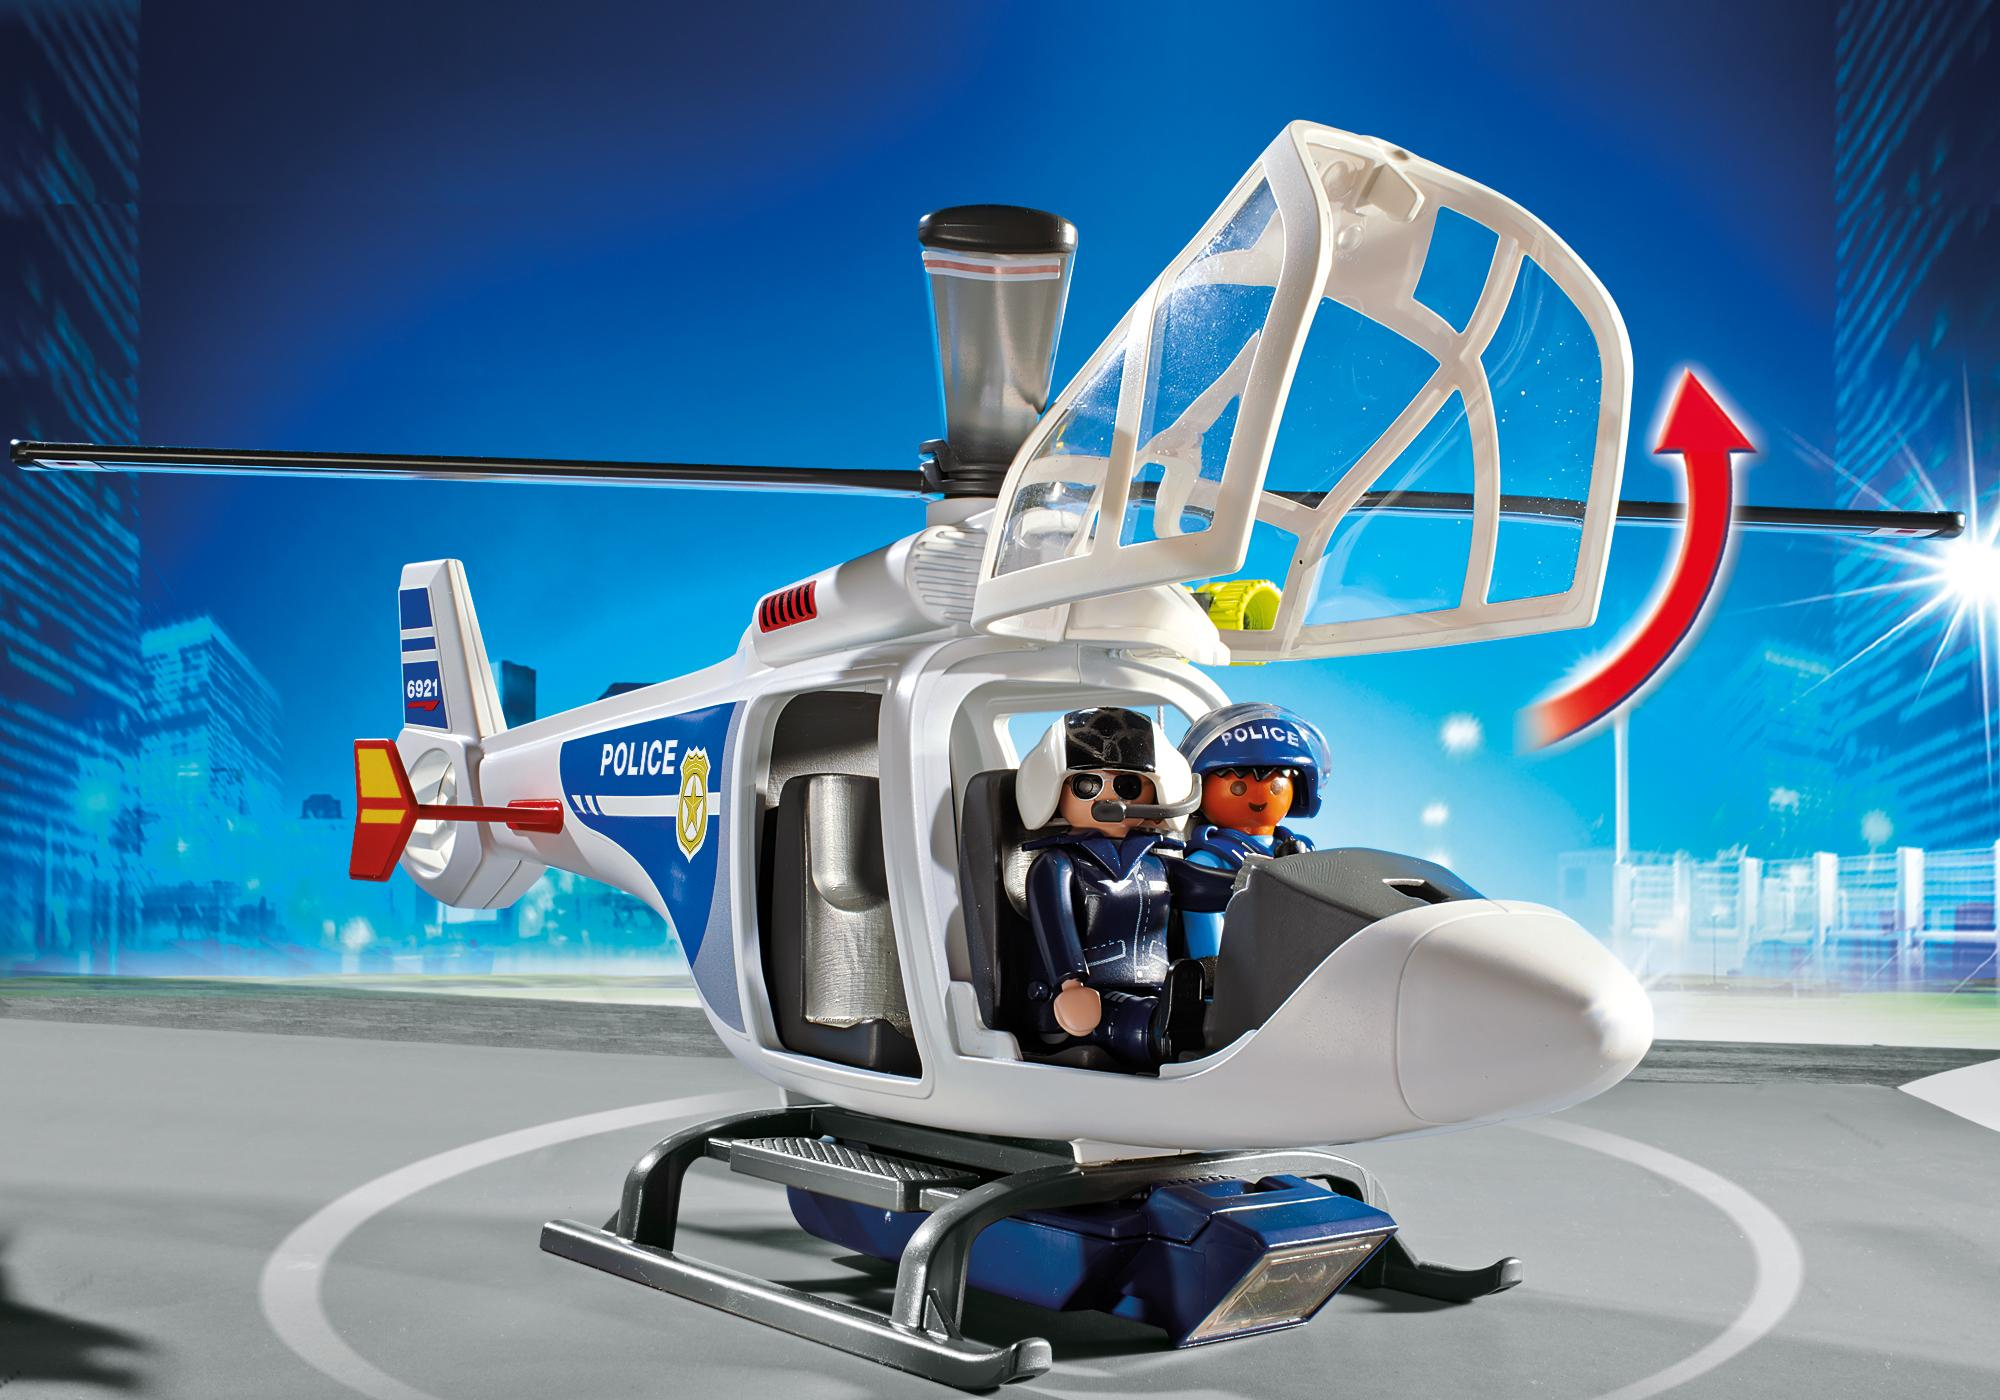 http://media.playmobil.com/i/playmobil/6921_product_extra1